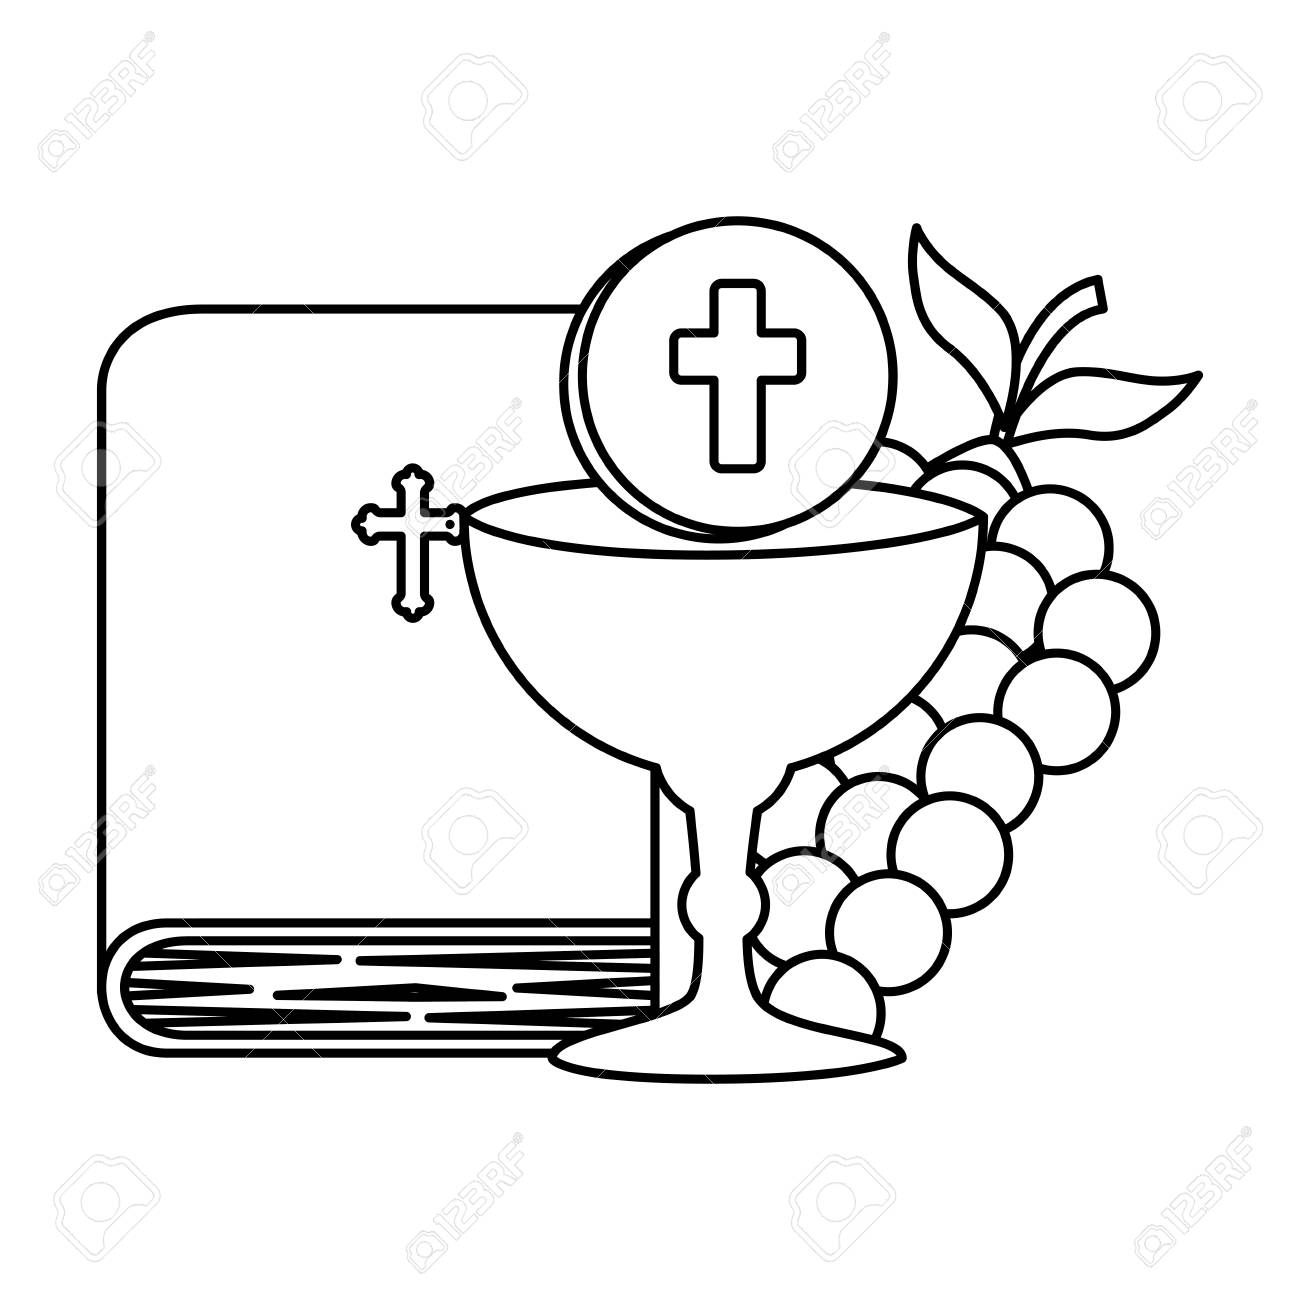 holy bible with chalice and grapes vector illustration design - 120488087